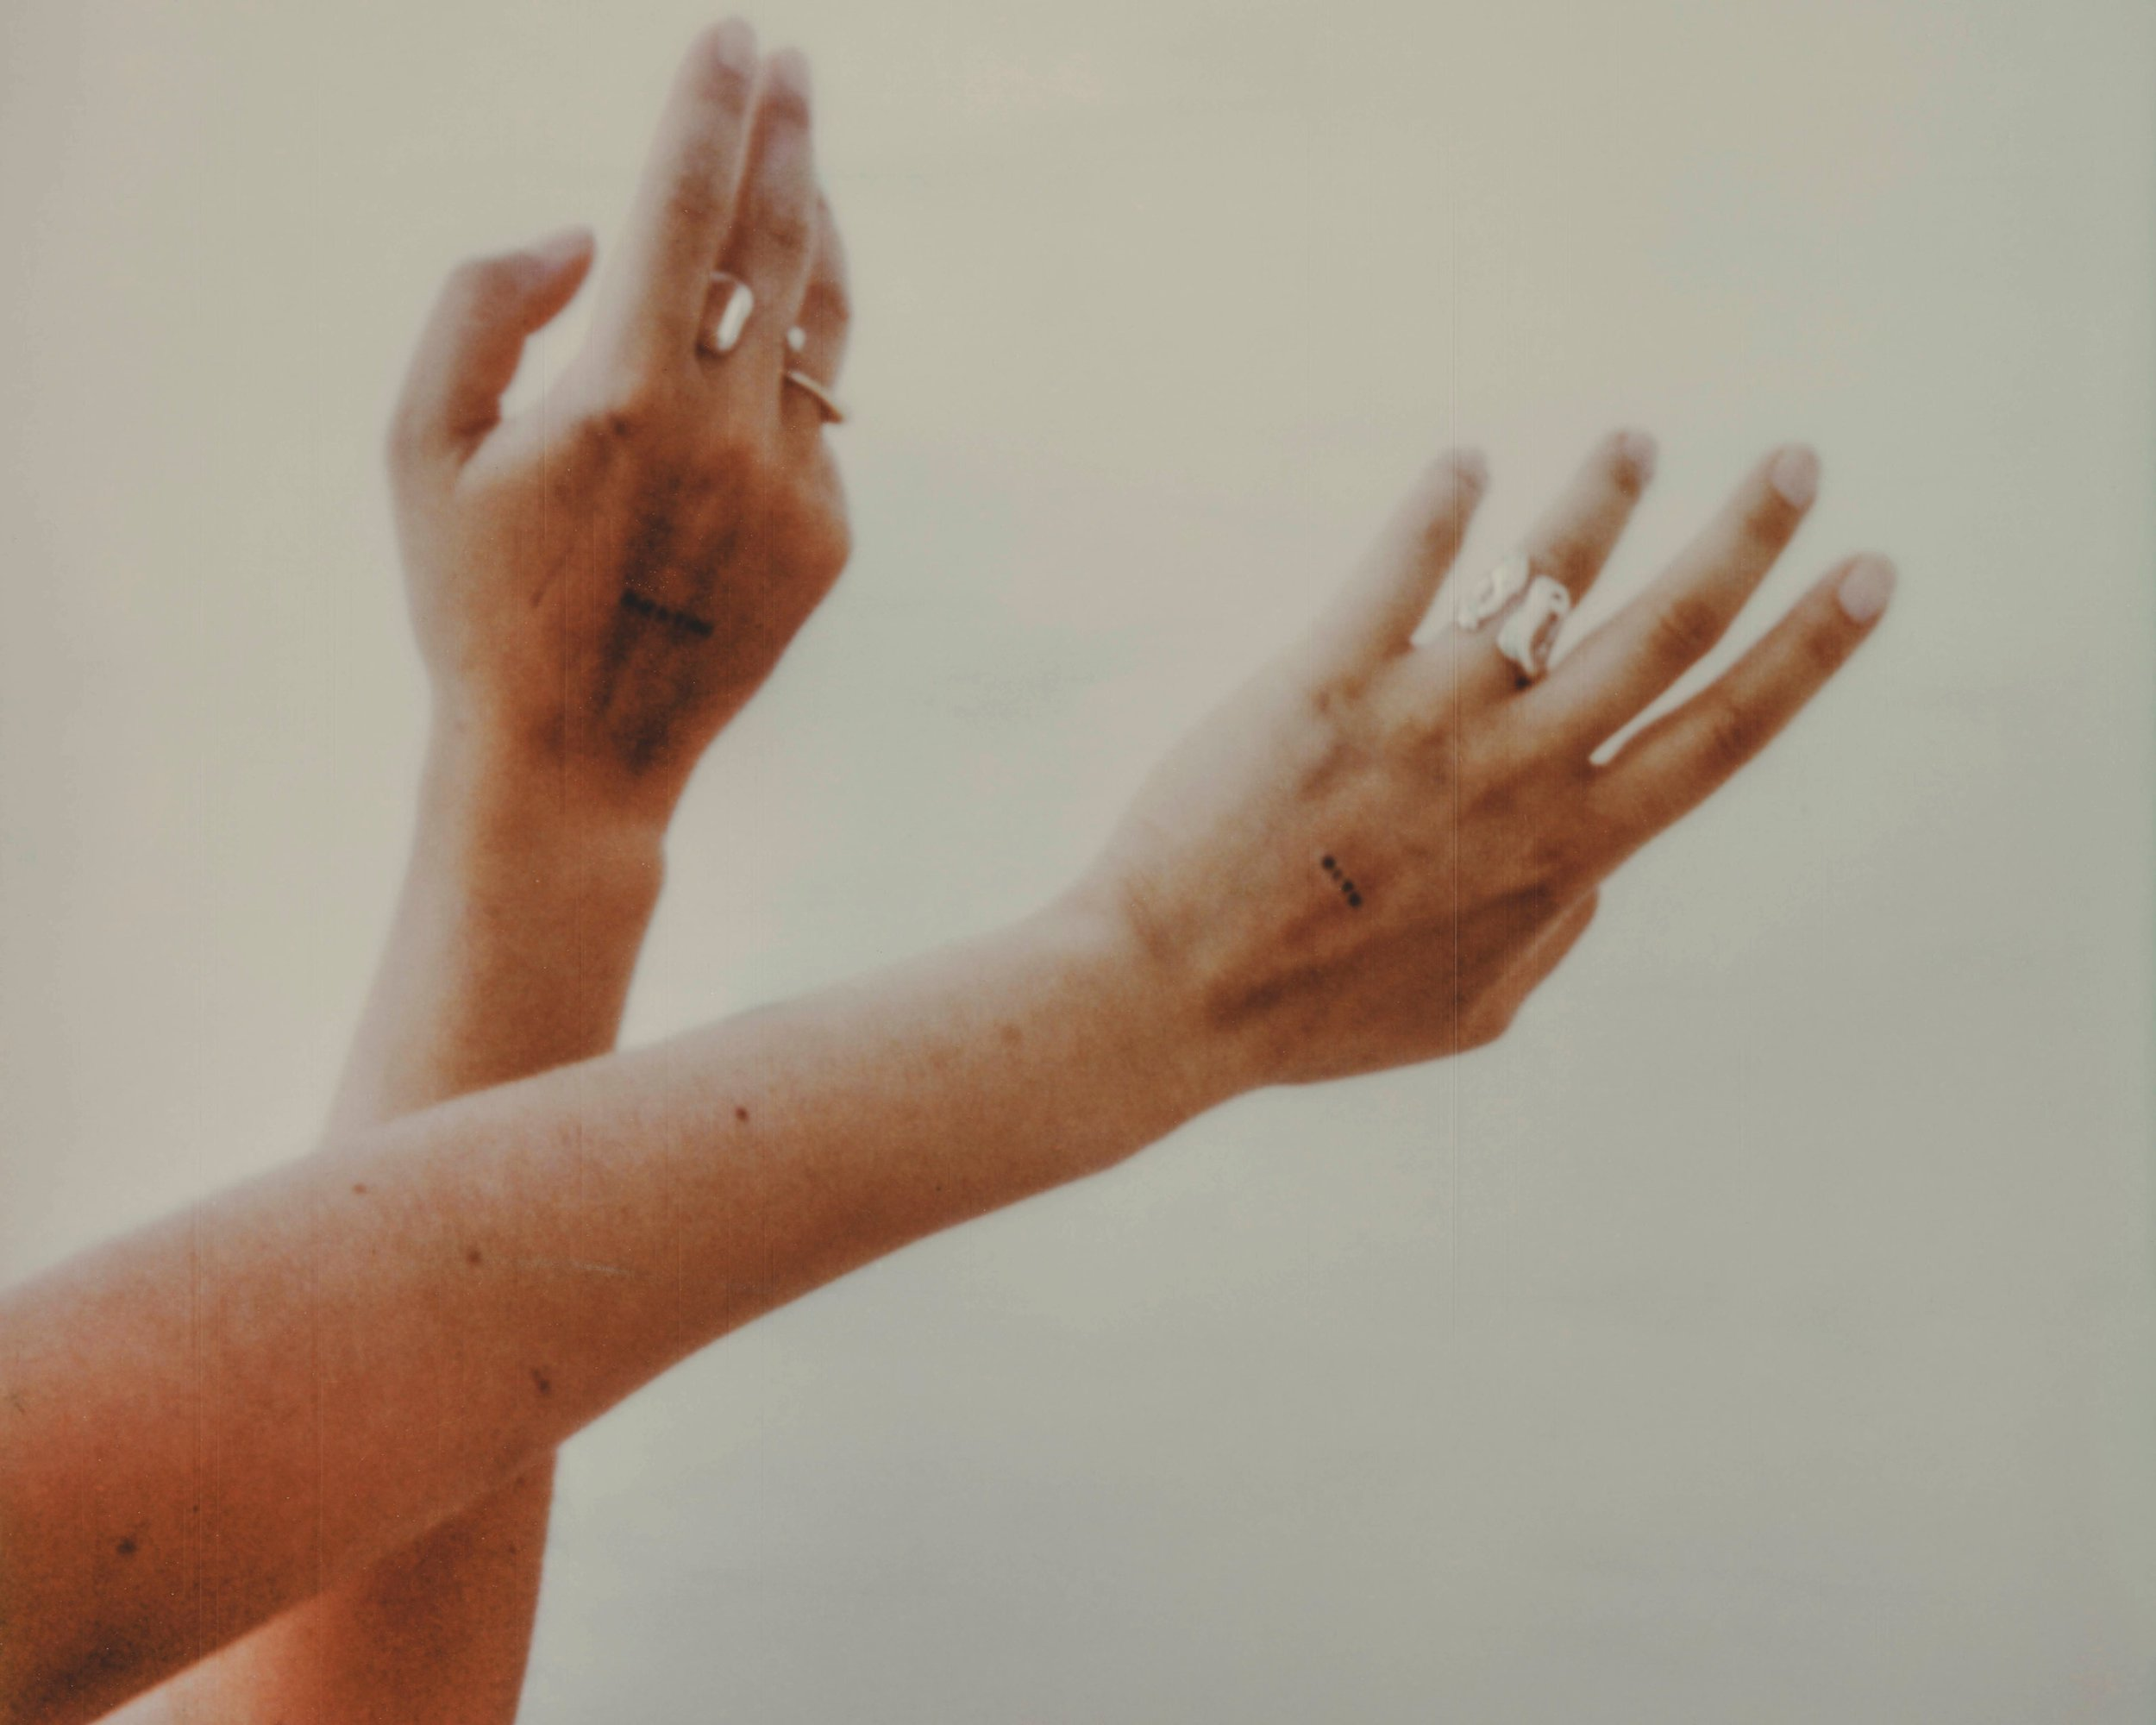 GARY FRANKS FOR ANNE DAHL / THE BOUNDLESS, OVERGROWN SIGNET & TEMRPORAL RINGS CAPTURED ON POLAROID